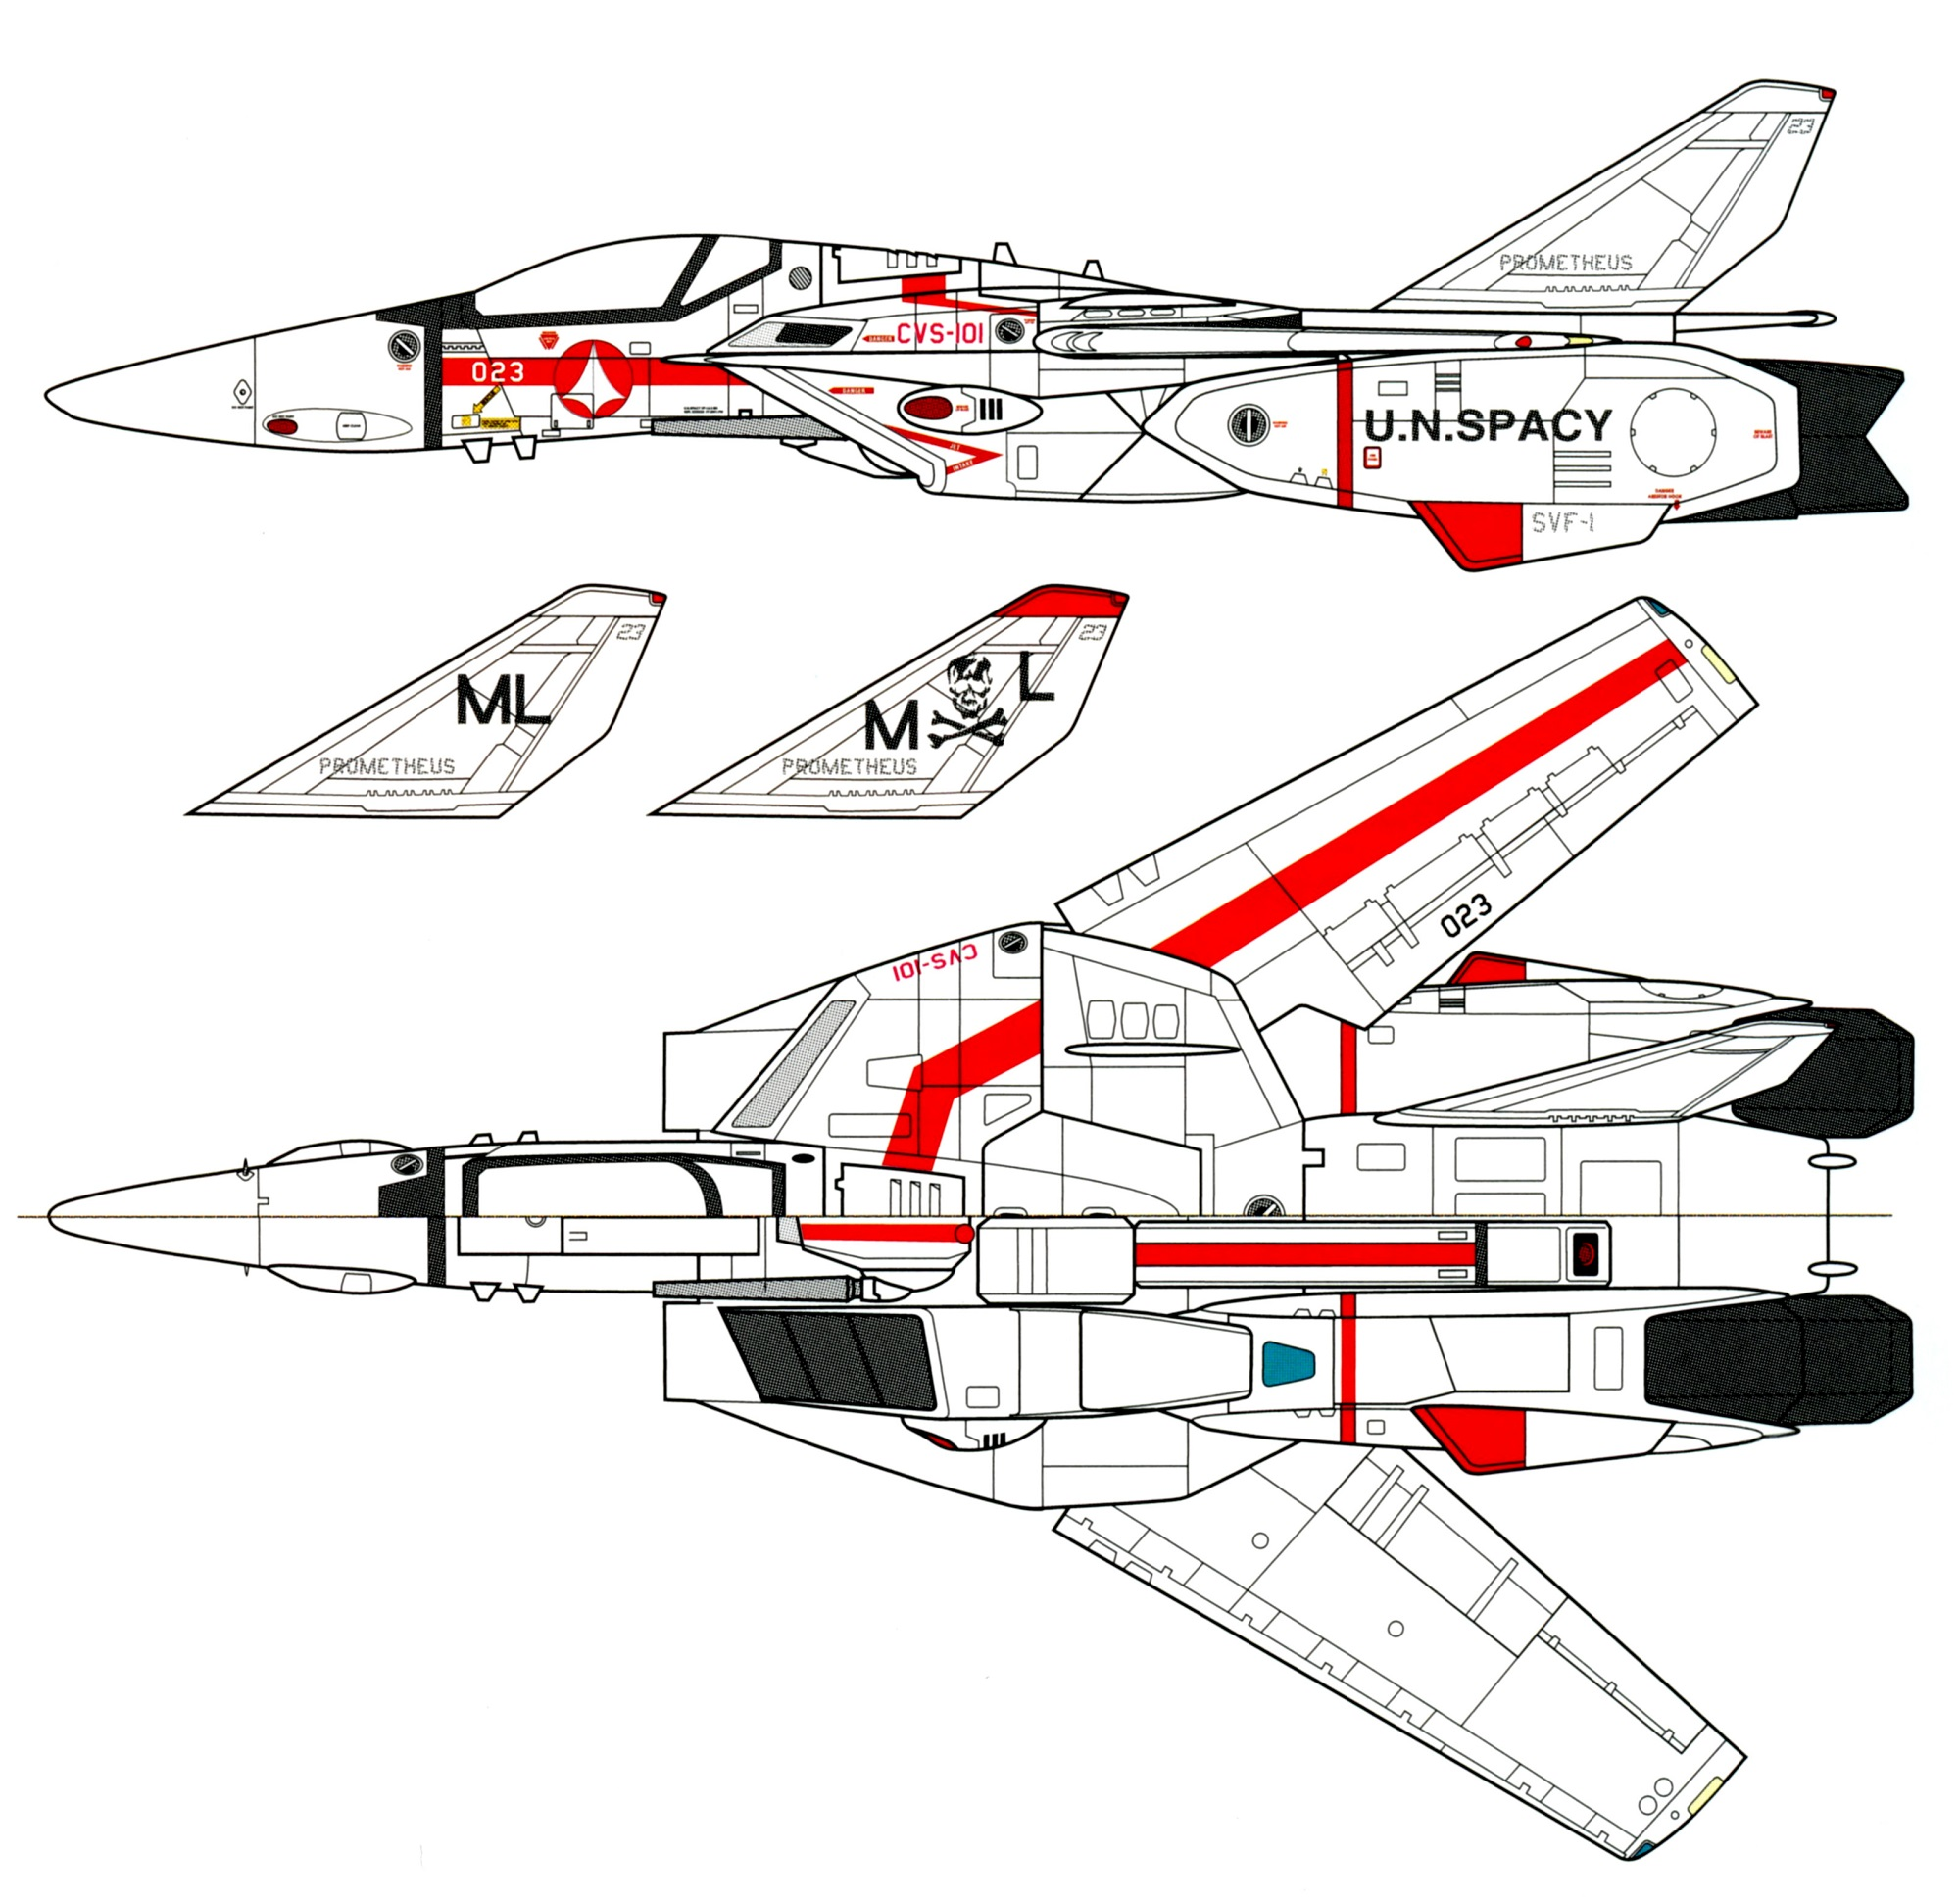 Pin Un Spacy Fighter Aircraft Wallpapers And Backgrounds On Pinterest